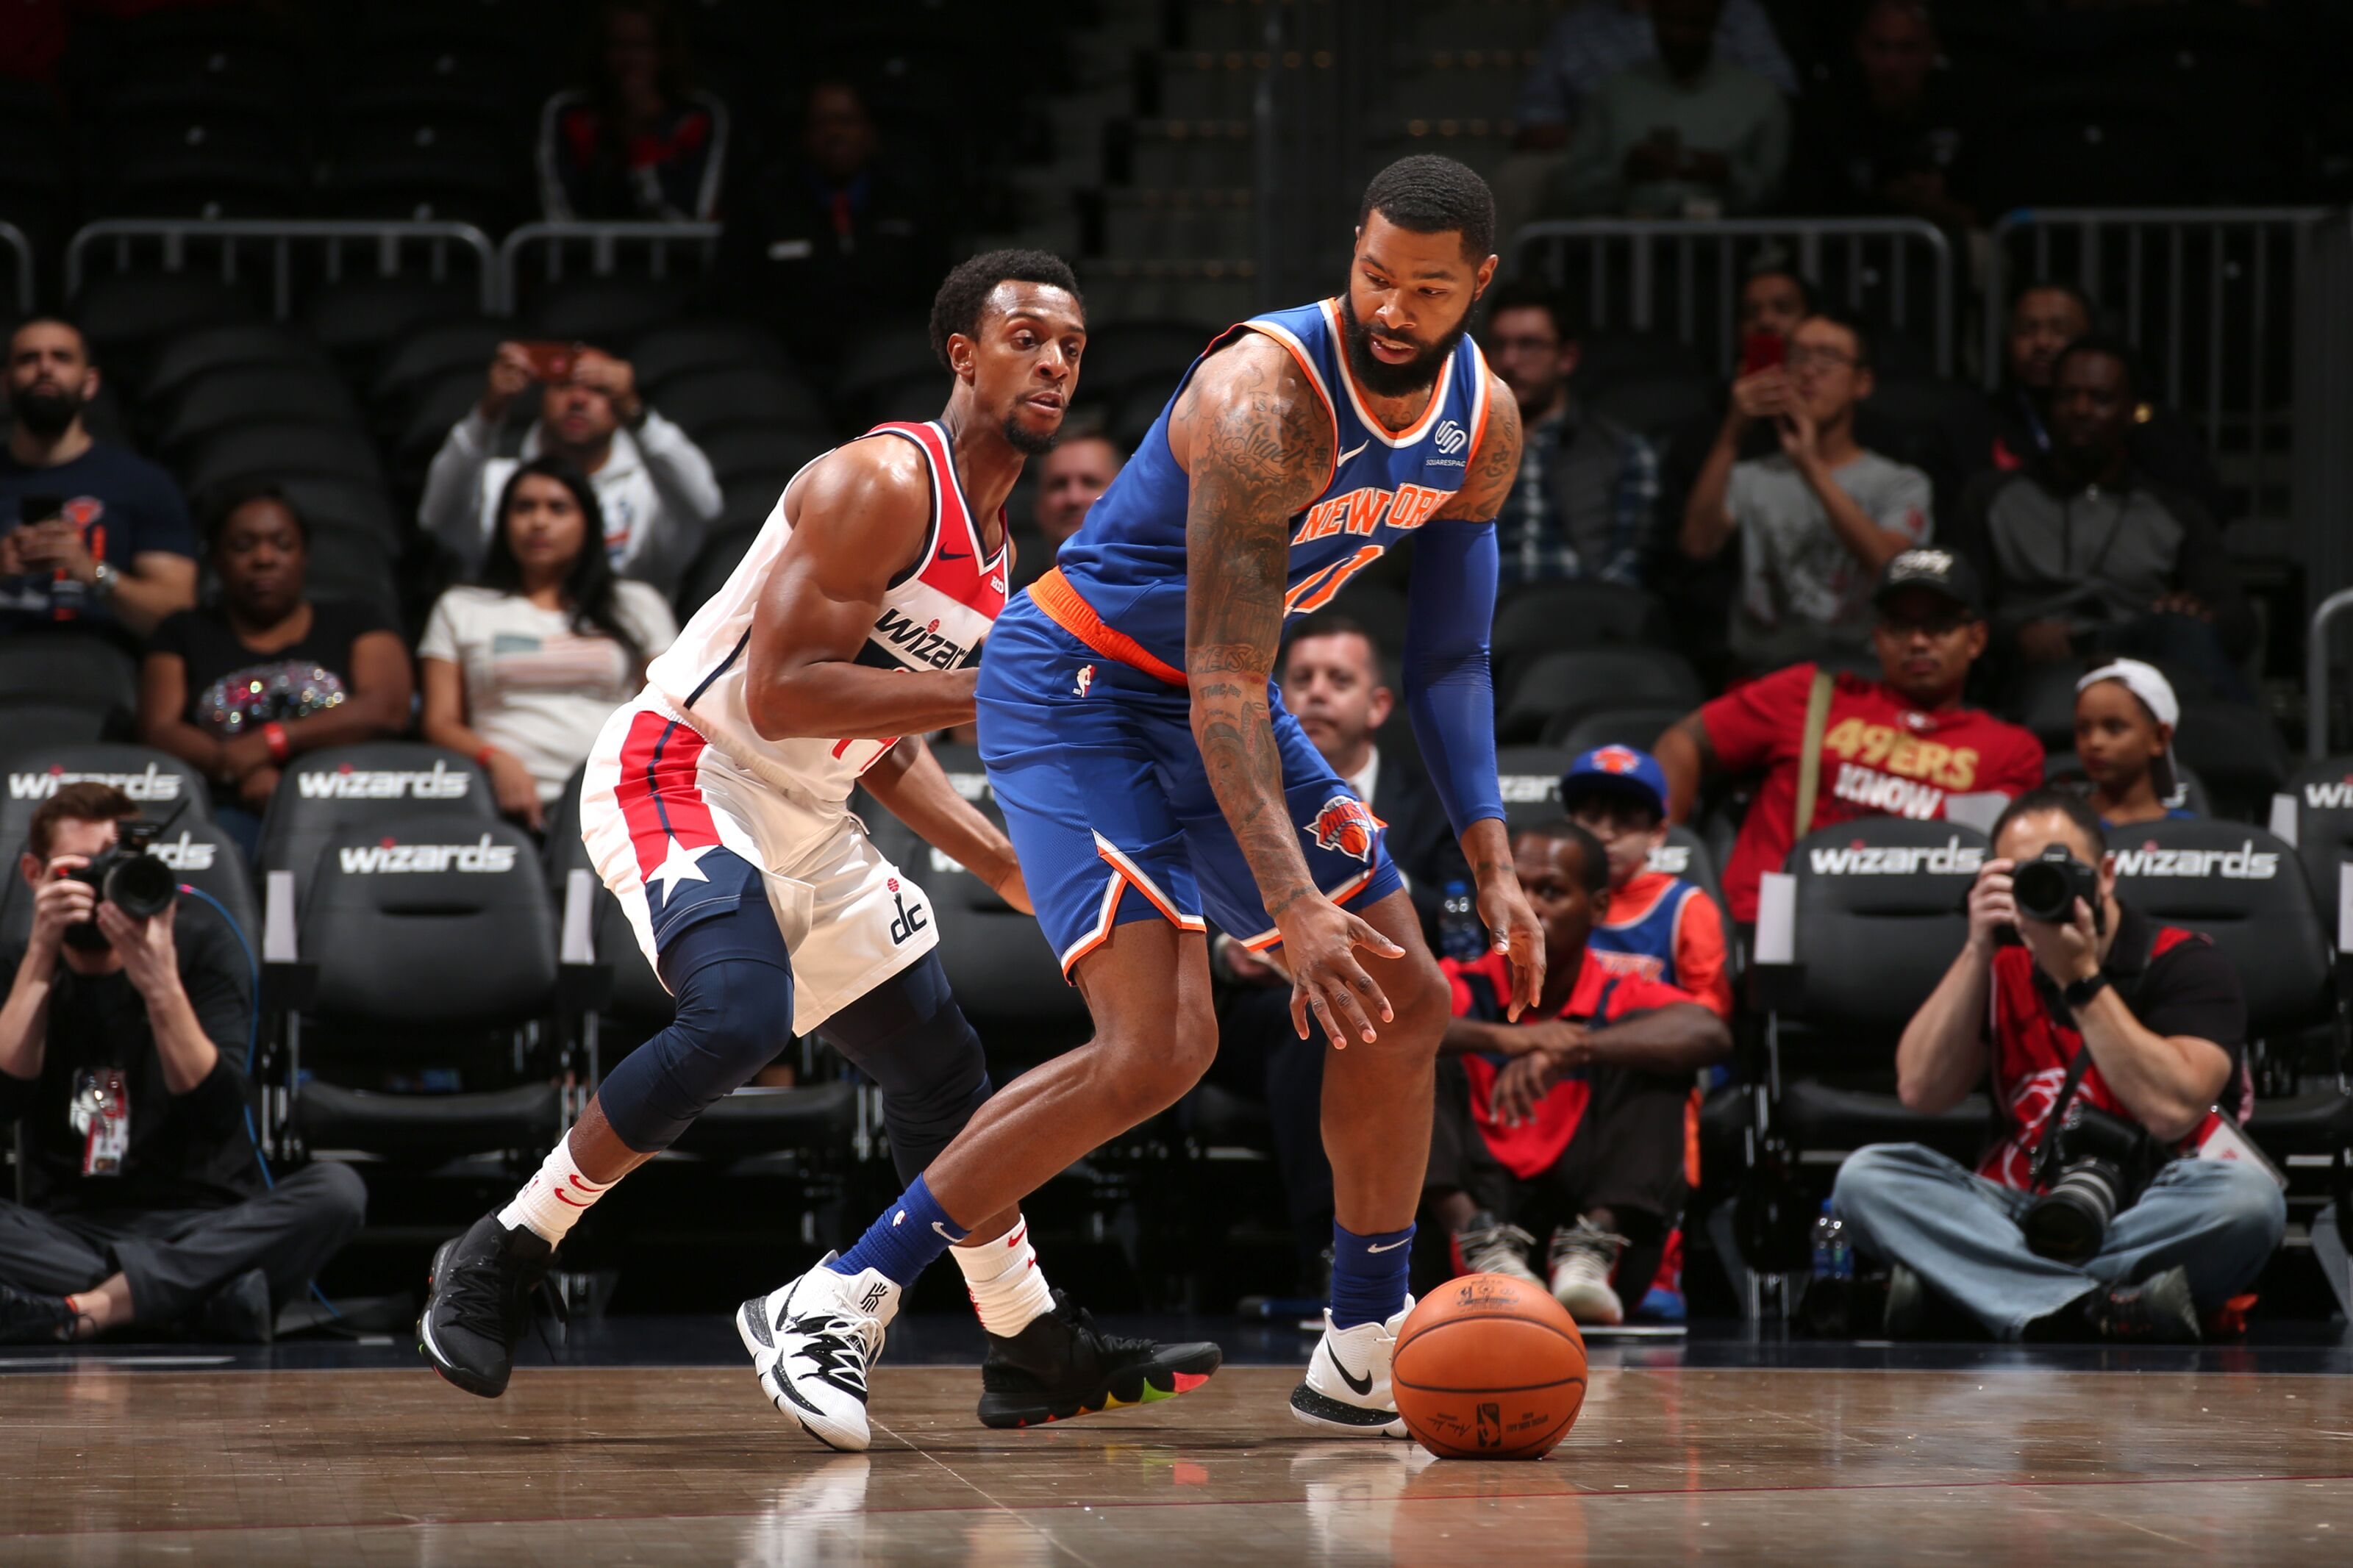 New York Knicks suffer first loss in first MSG game